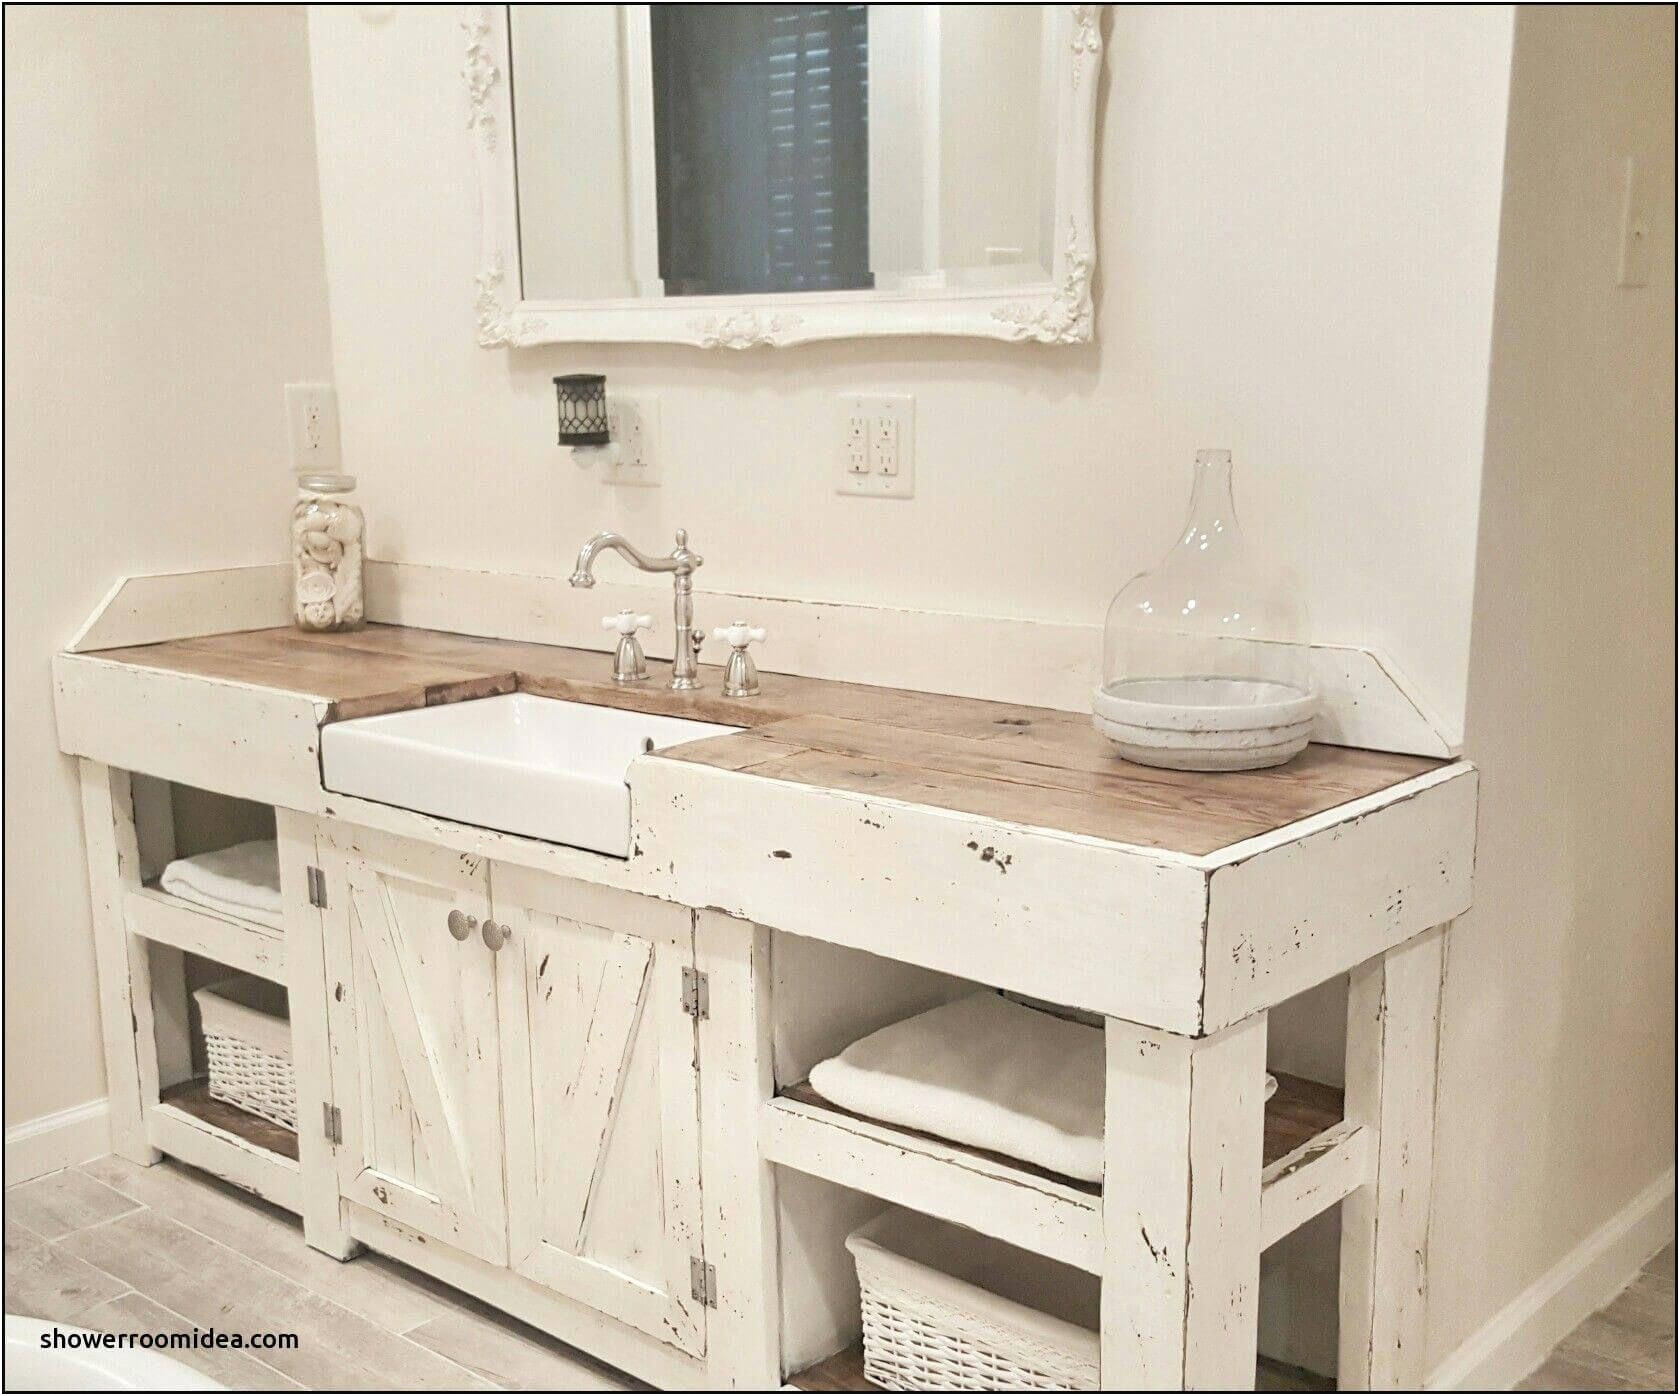 Lovely Farmhouse Sinks for Bathrooms